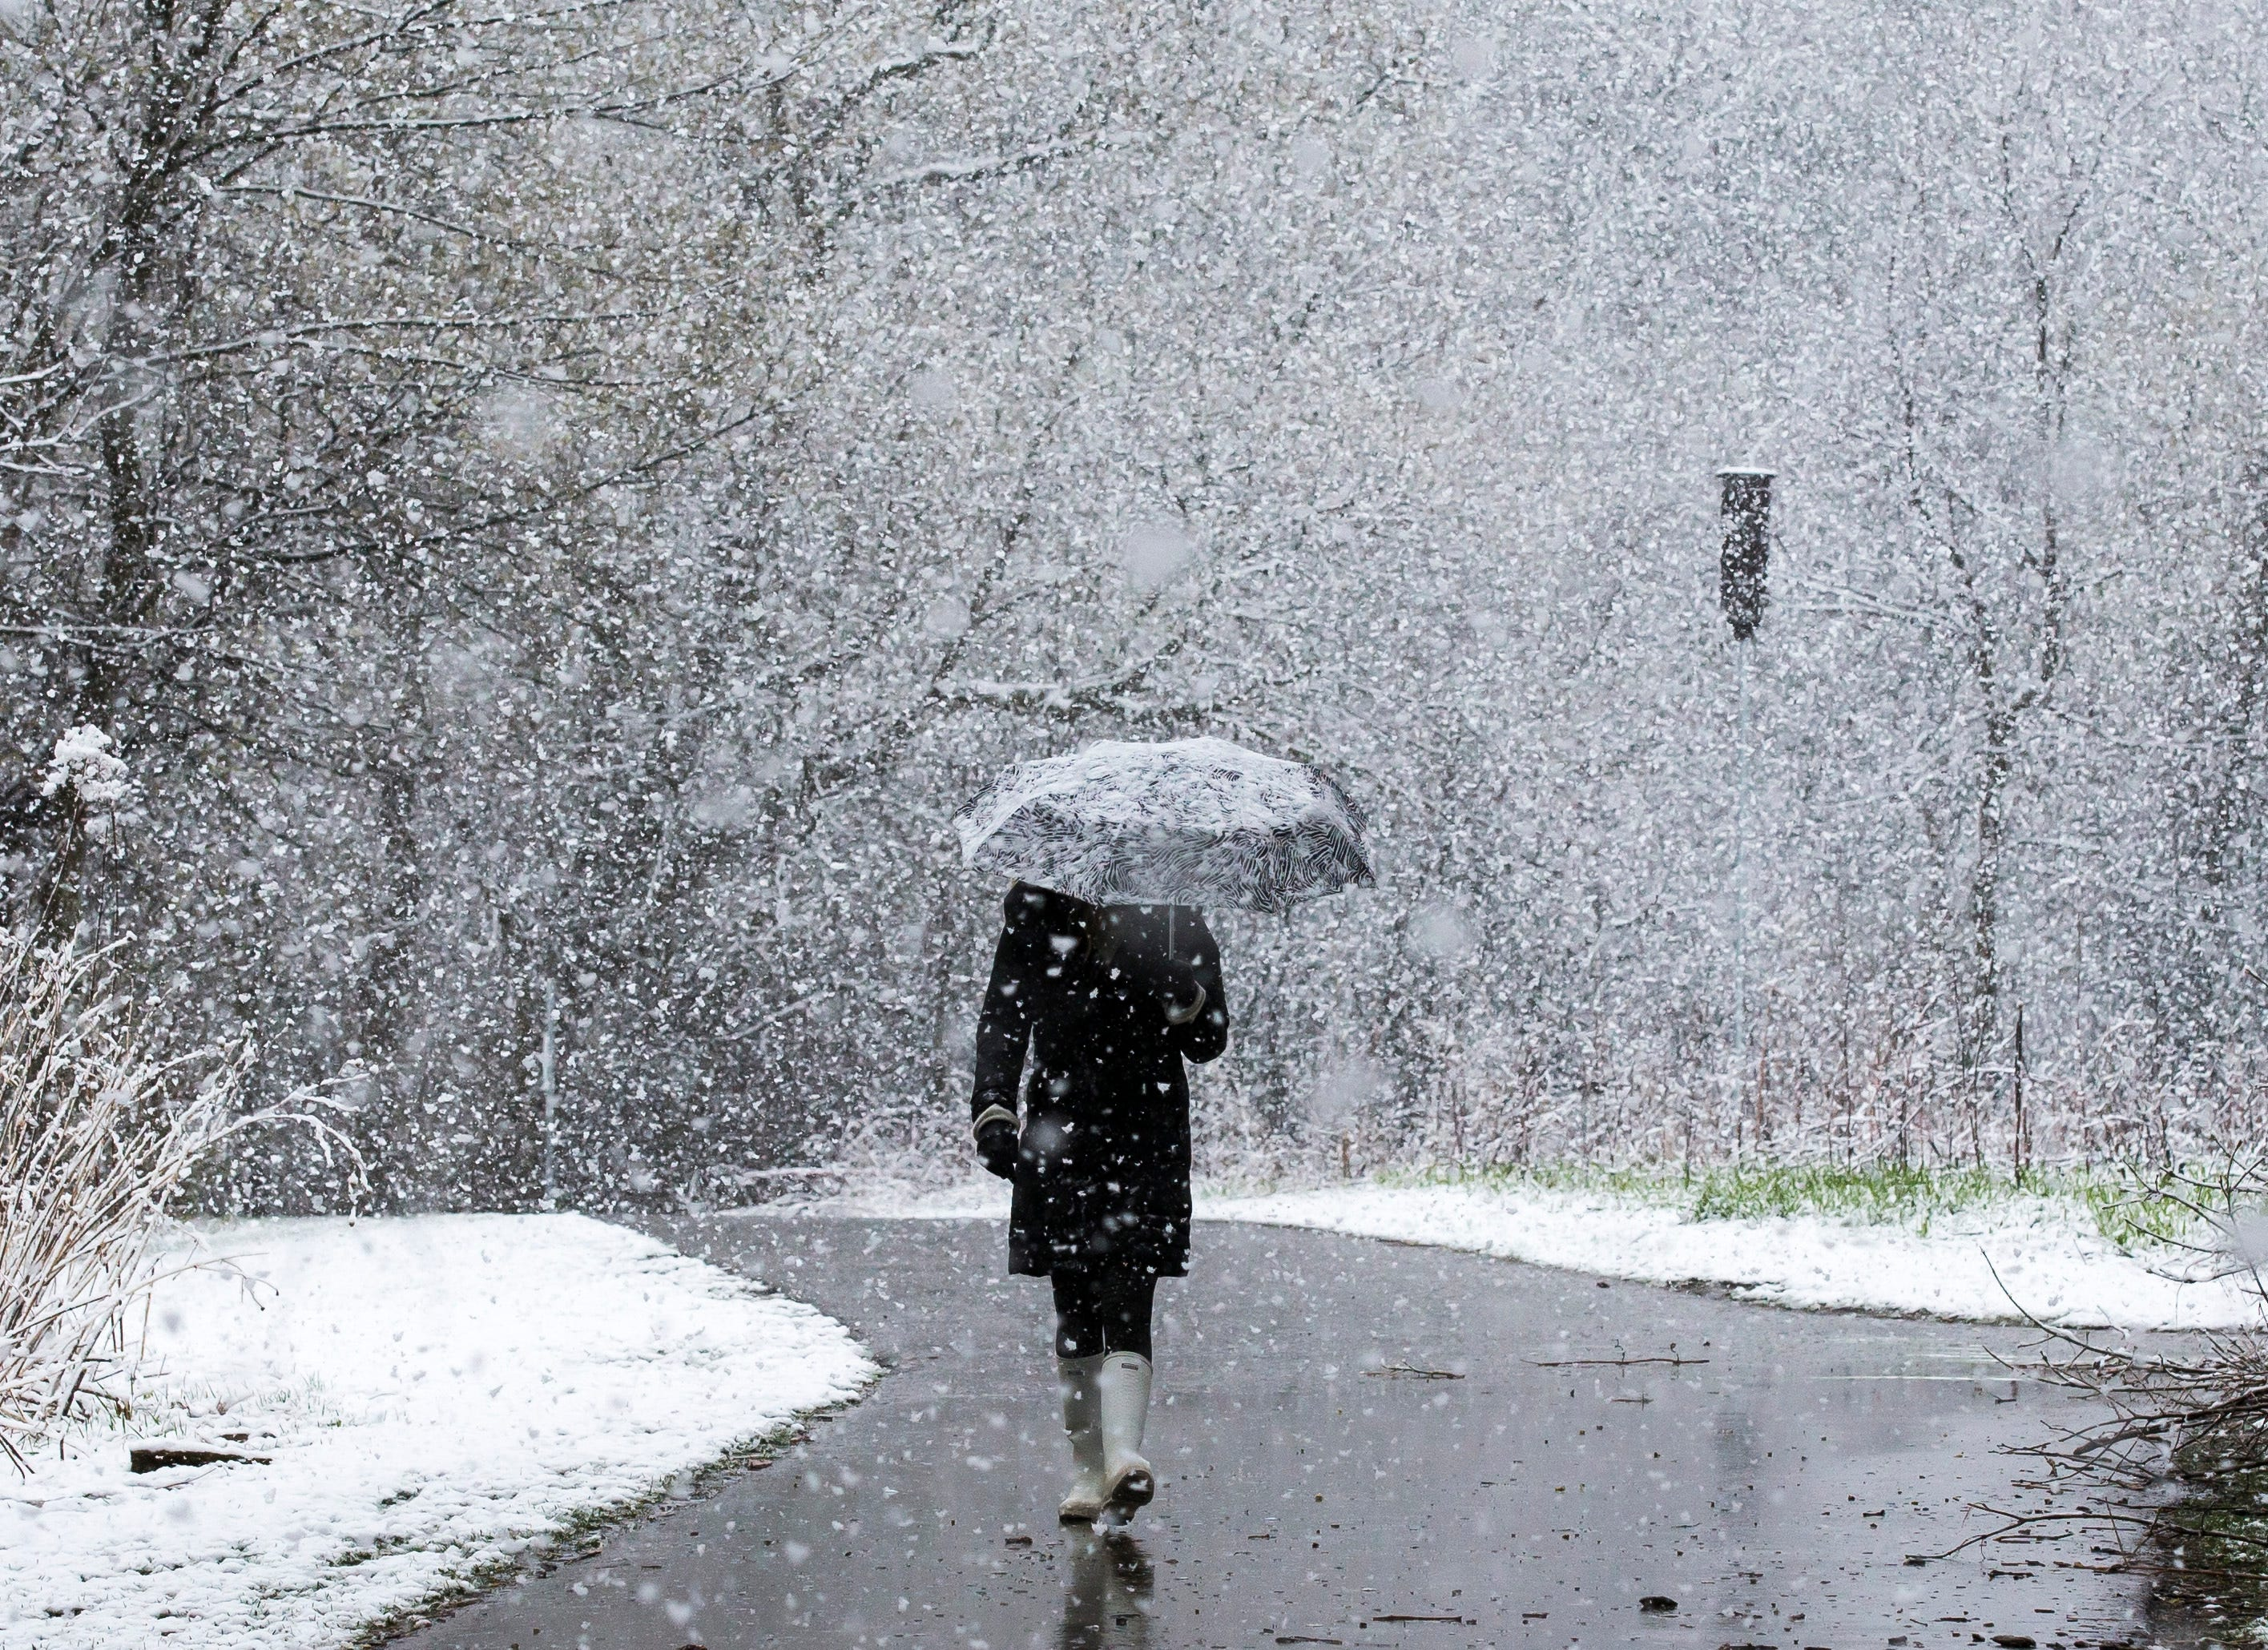 Jodi Frisk is surrounded by snowflakes while walking along a paved path near the Quarry Hill Nature Center on Saturday, April 27, 2019, in Rochester, Minn.